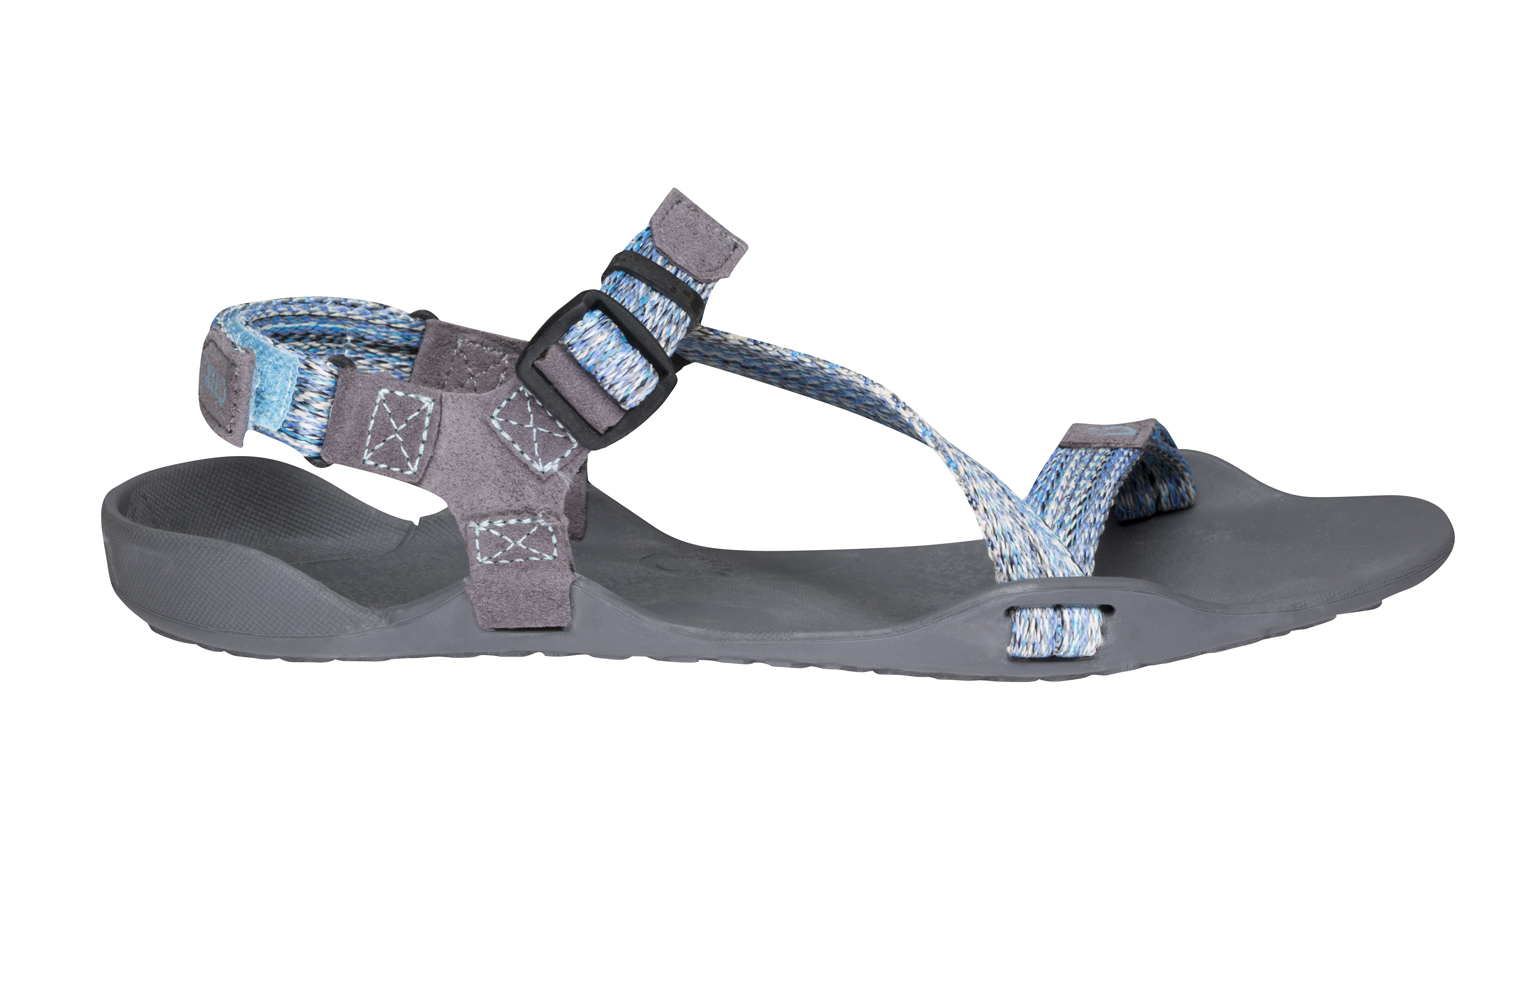 Original The Hanas Base Is The Patented FeelTrue&174 Rubber Sole Used In Xeros Bestselling Sandals  Although The Hana Was Originally Designed For Men, Women Reported The Wider Base Works Well For Their Feet Too For Both Sexes With Narrower